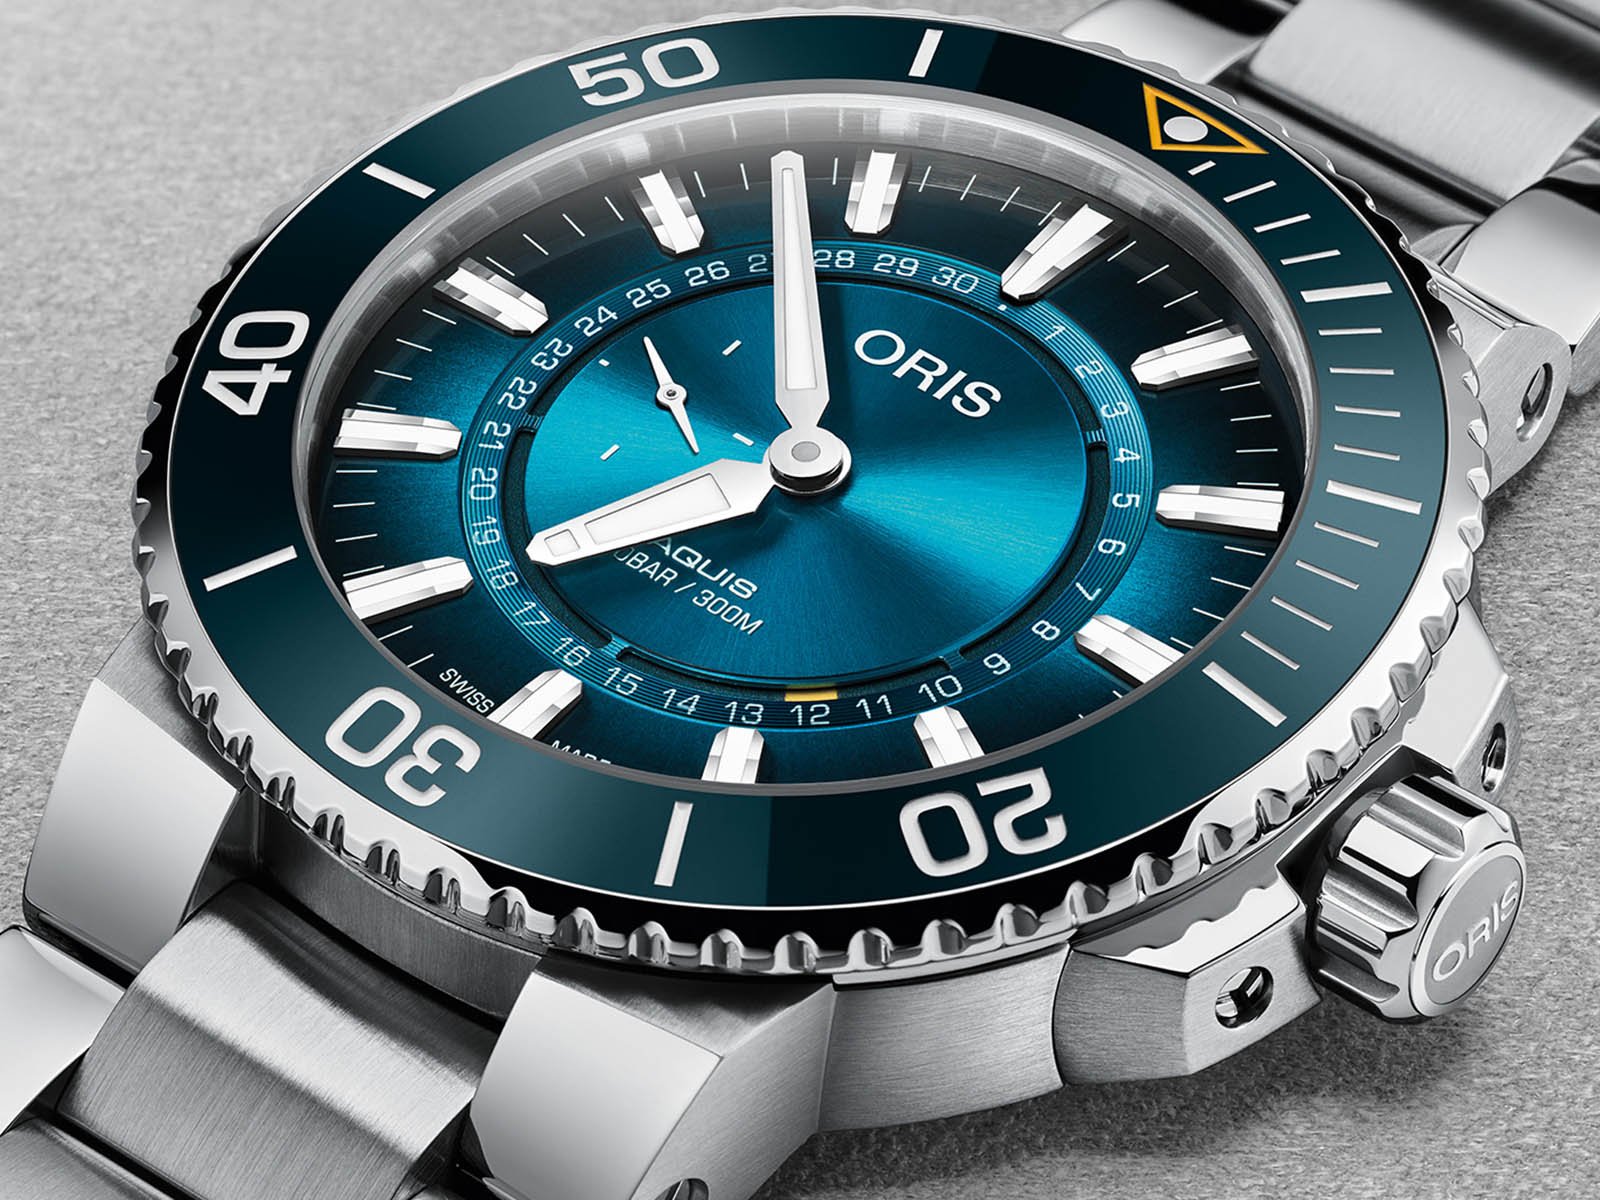 01-743-7734-4185-set-oris-great-barrier-reef-limited-edition-2.jpg